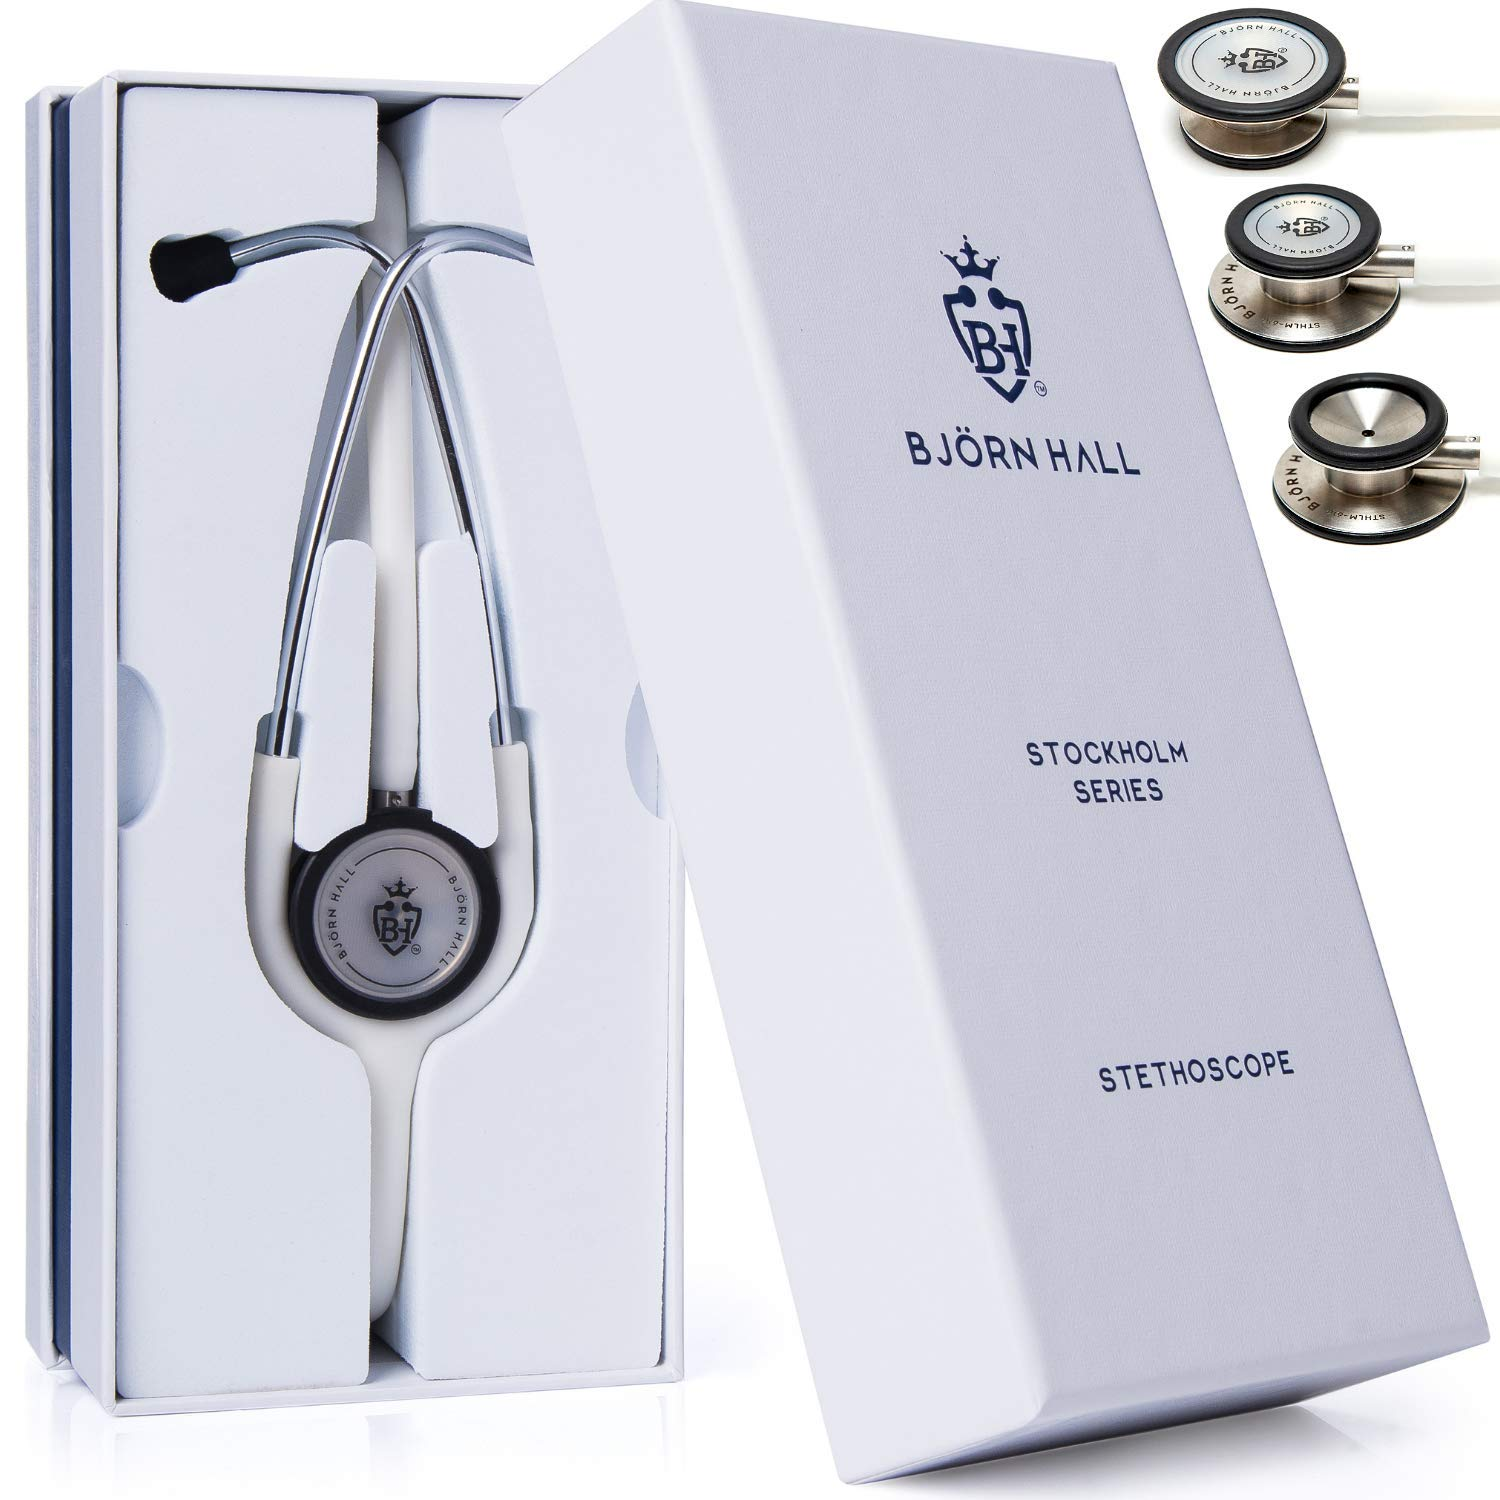 BJÖRN HALL Lightweight Stethoscope | Stainless Steel Dual Head Chestpiece, Turnable Diaphragm, Bell, Soft Eartips | Designer Stethoscope Perfect Gift for Doctors, Nurses, EMT, Veterinarian & Students